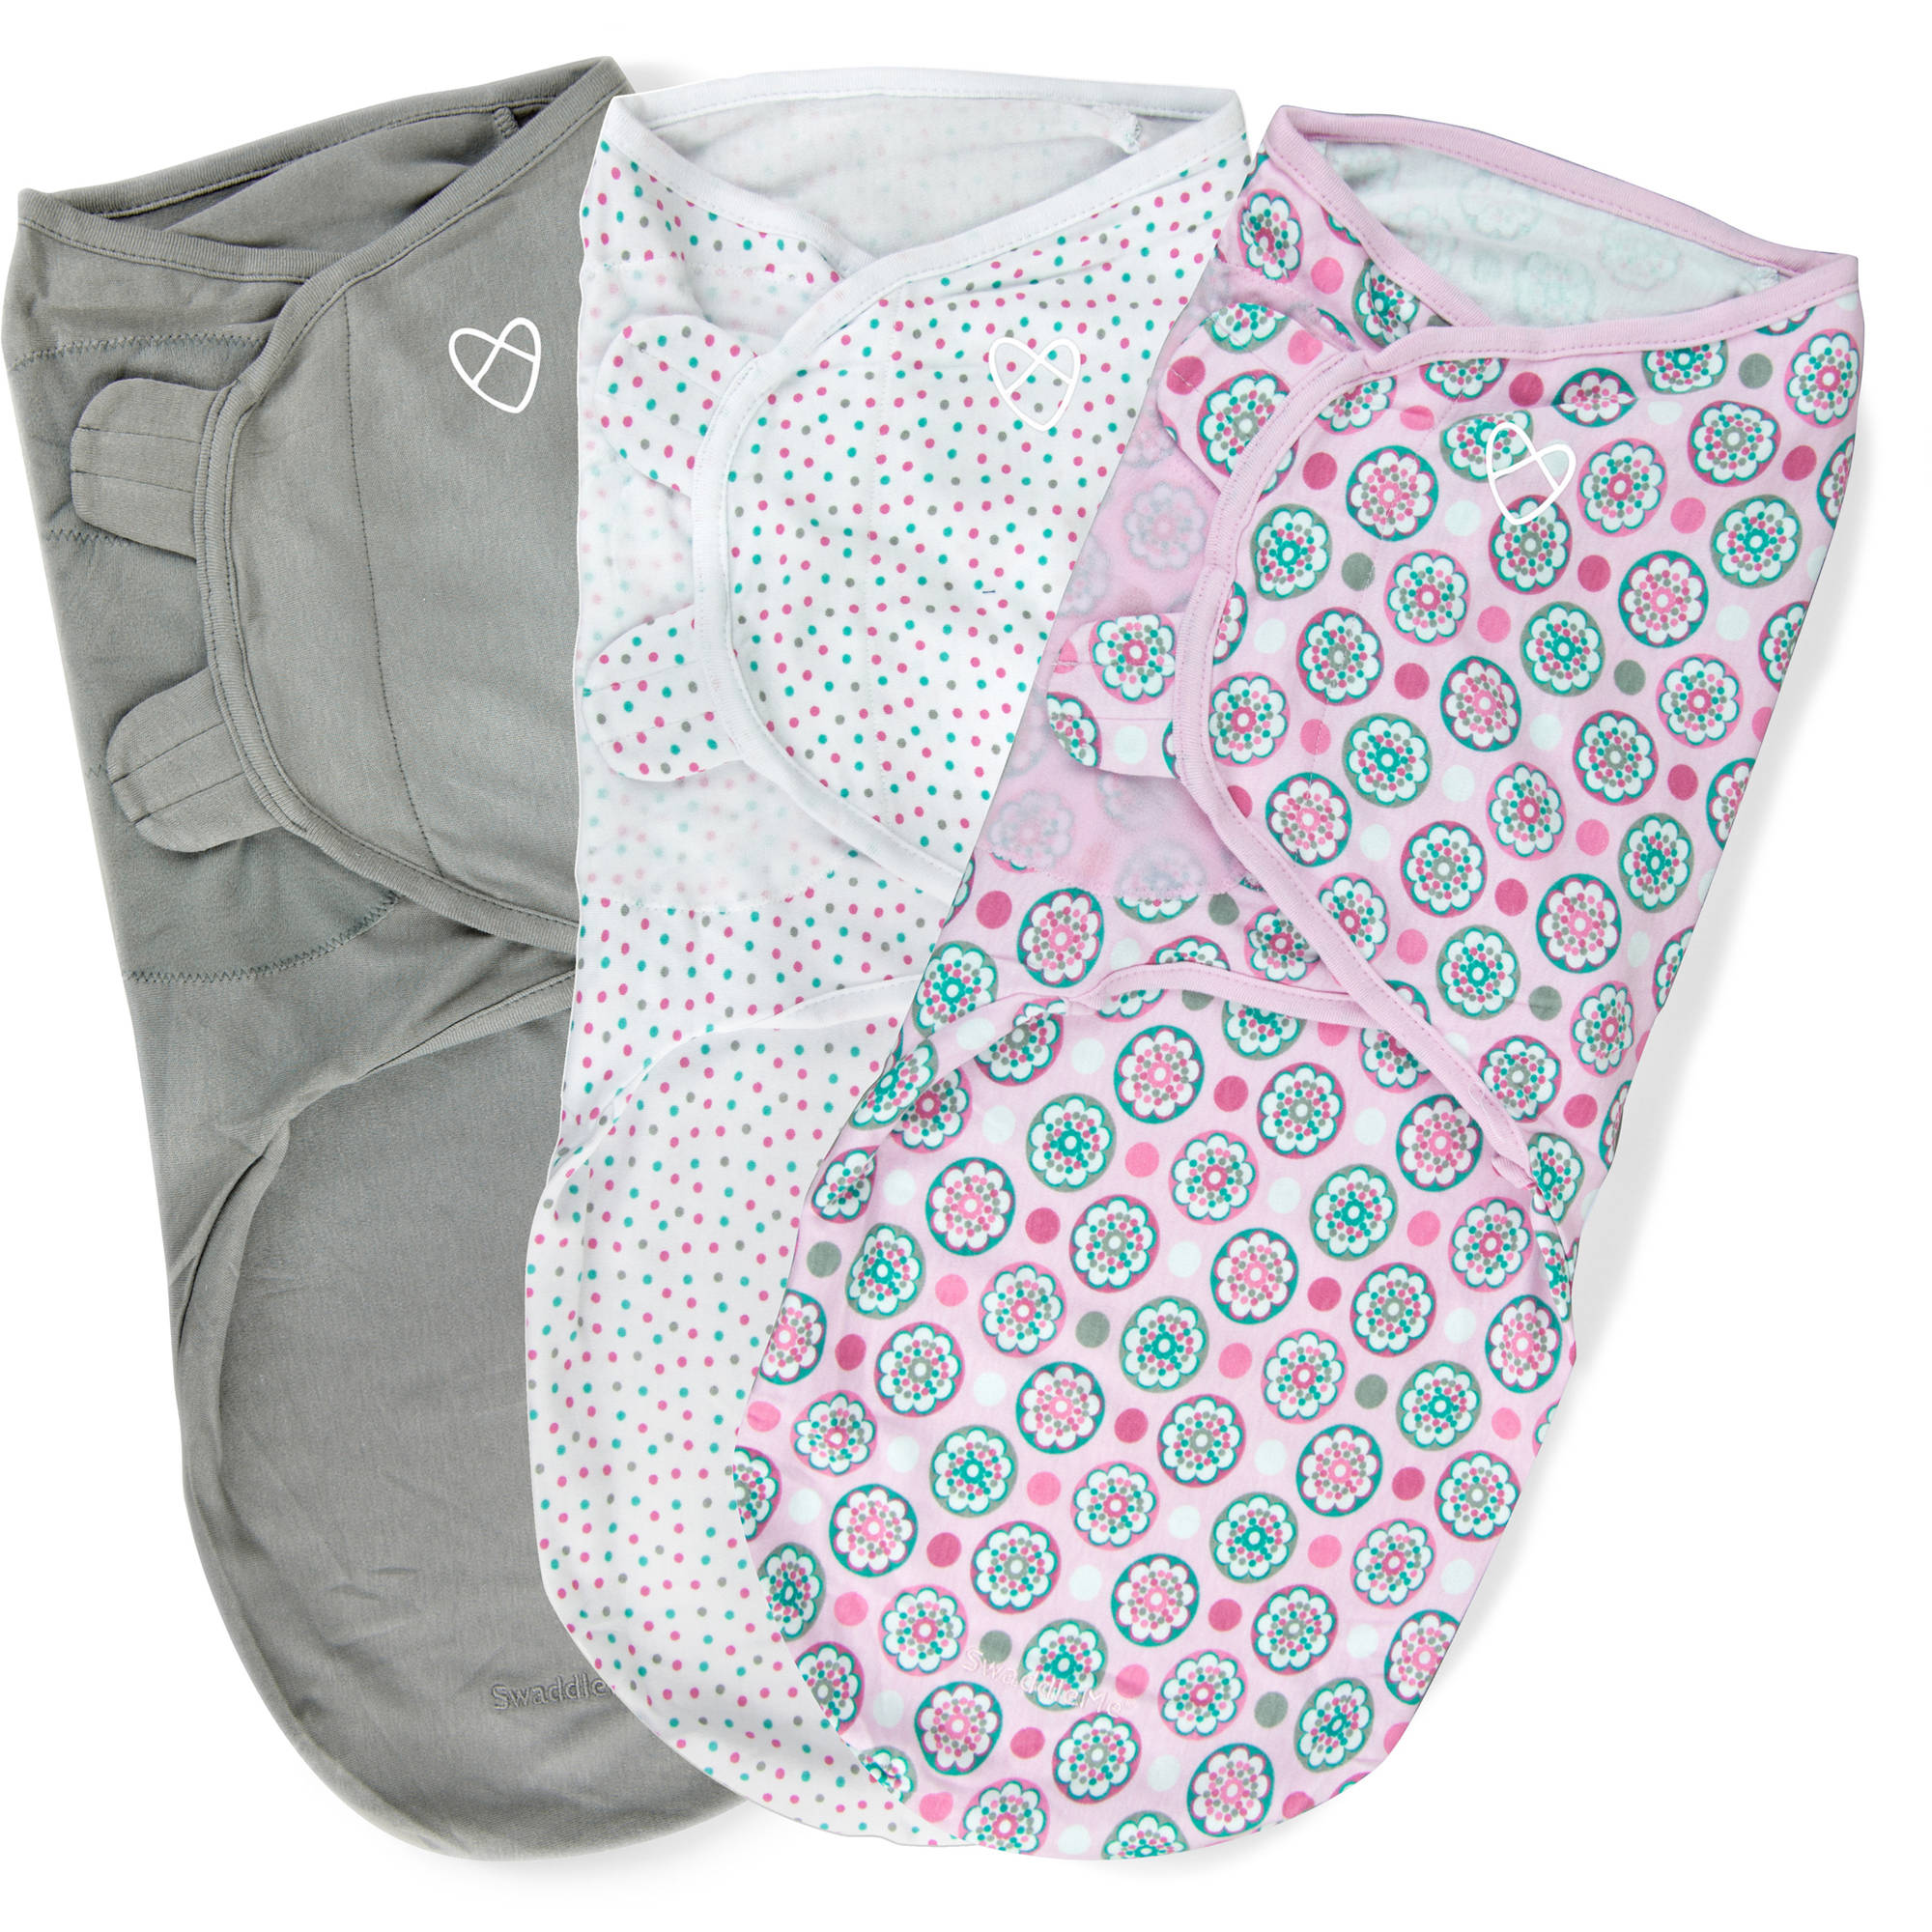 SwaddleMe Original Swaddle, 3-Pack, Floral Geo, Large